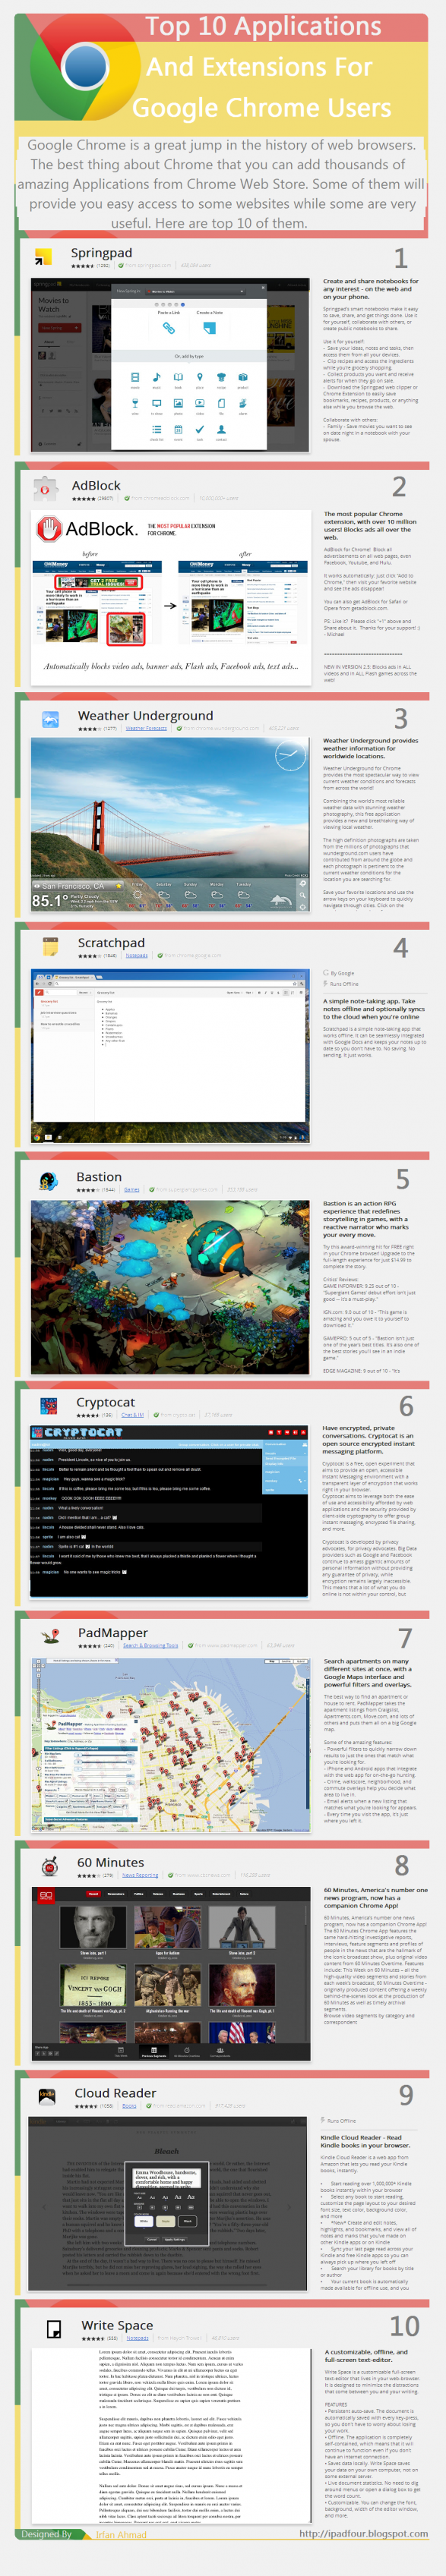 Top 10 Applications And Extensions For Google Chrome Users